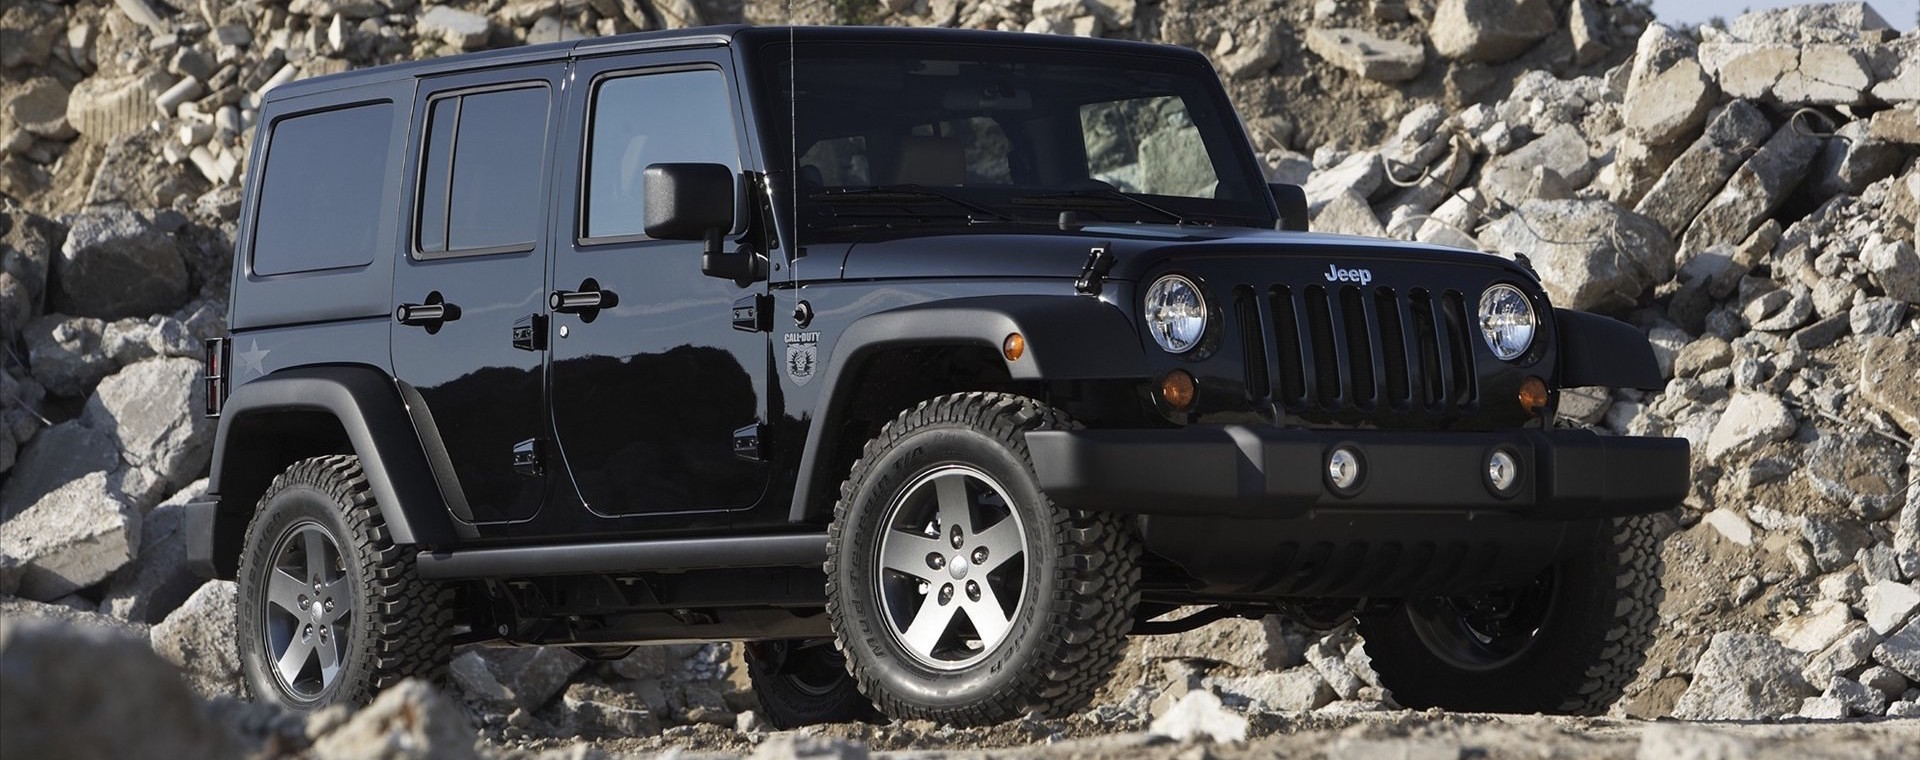 New Wrangler Unlimited inventory at Quirk Chrysler Jeep Dodge Ram